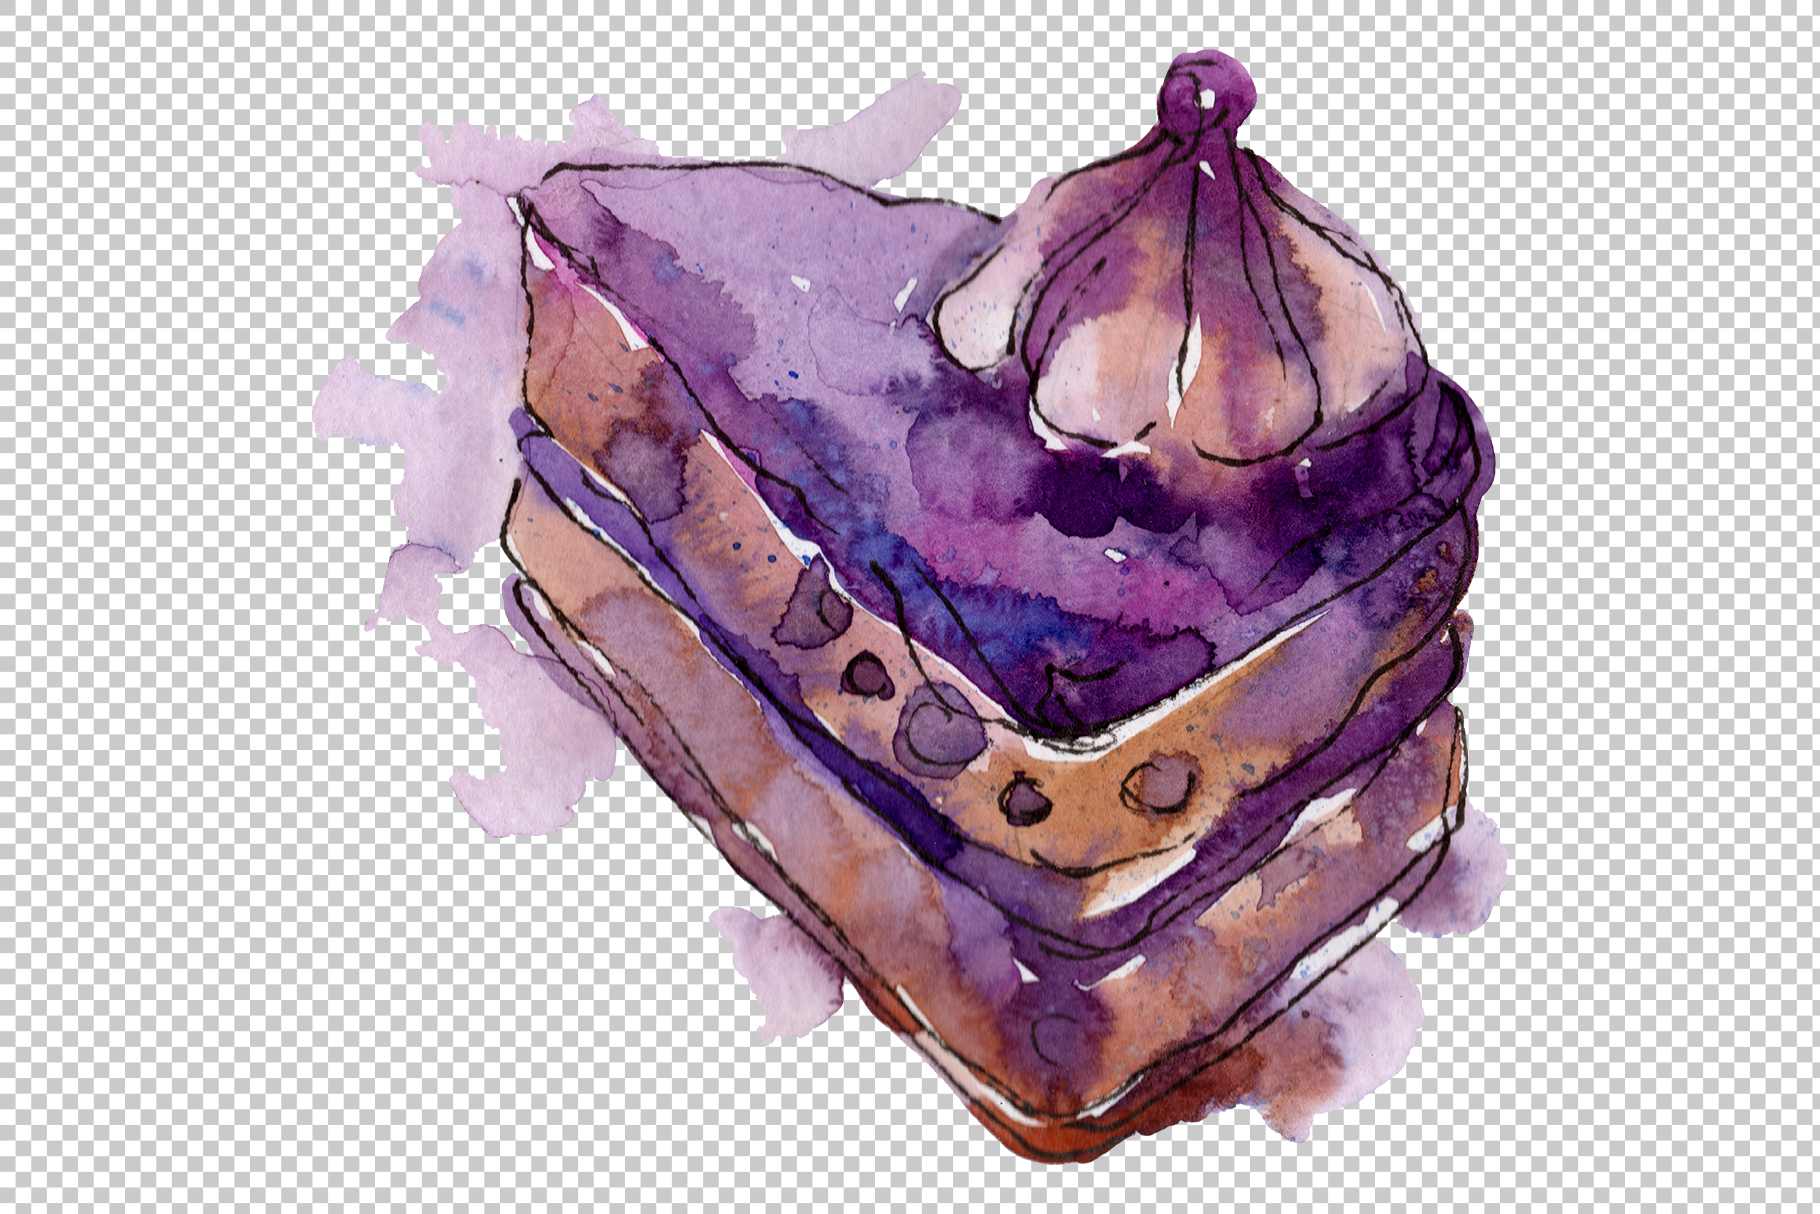 Sweet yummy cake Watercolor png example image 2